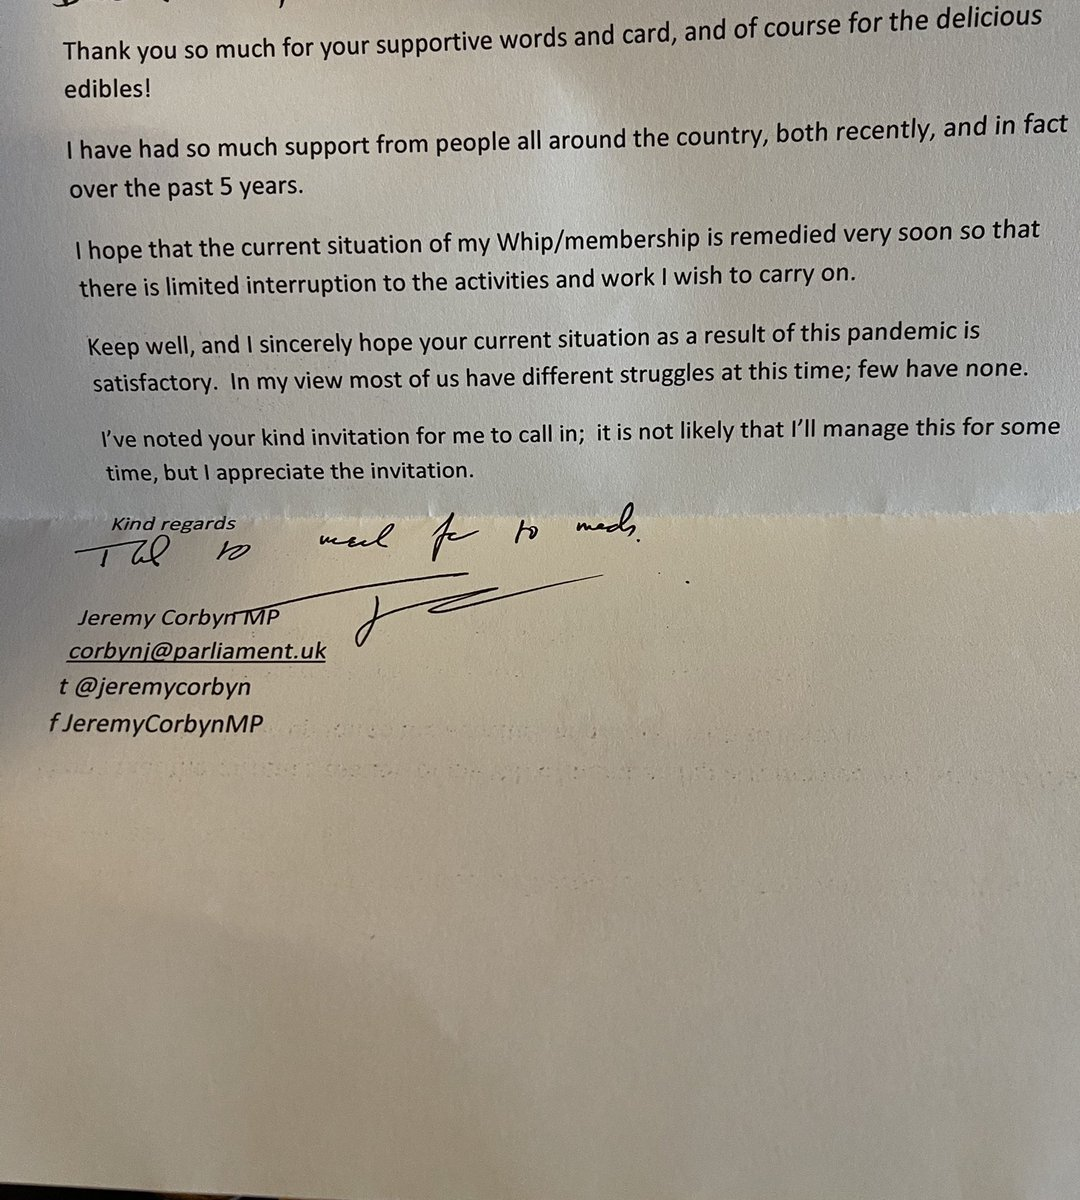 So I sent @jeremycorbyn a card of support and a box of fudge. He replied today and made my day!   Jeremy will always be the most principled and honest man in parliament, and I will always thank him for addressing racism and discrimination in all forms and his tireless work!